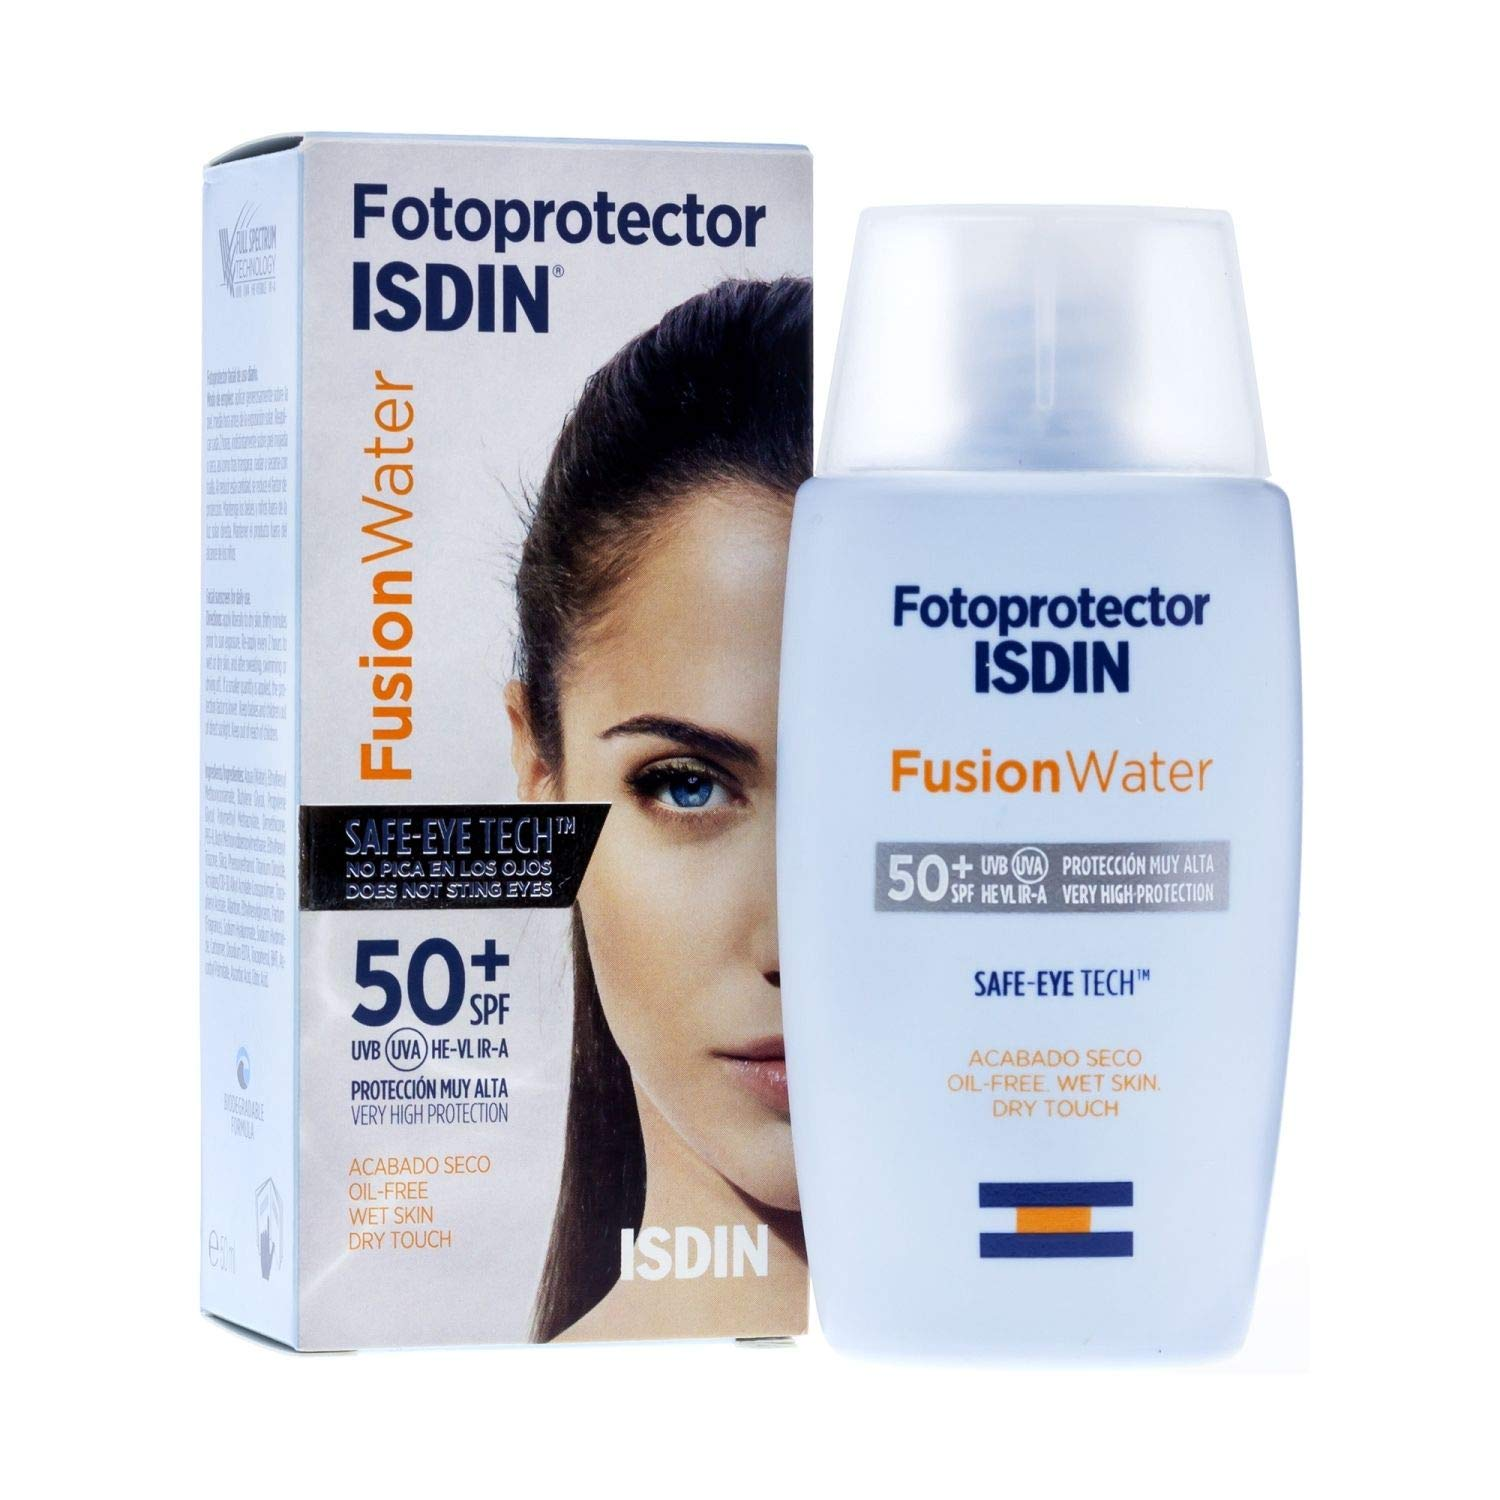 Amazon.com: ISDIN Fotoprotector Fusion Water SPF50+ 50ml - Solar Protection - Skin Care - Solar Cream - Moisturizers - Spain: Beauty